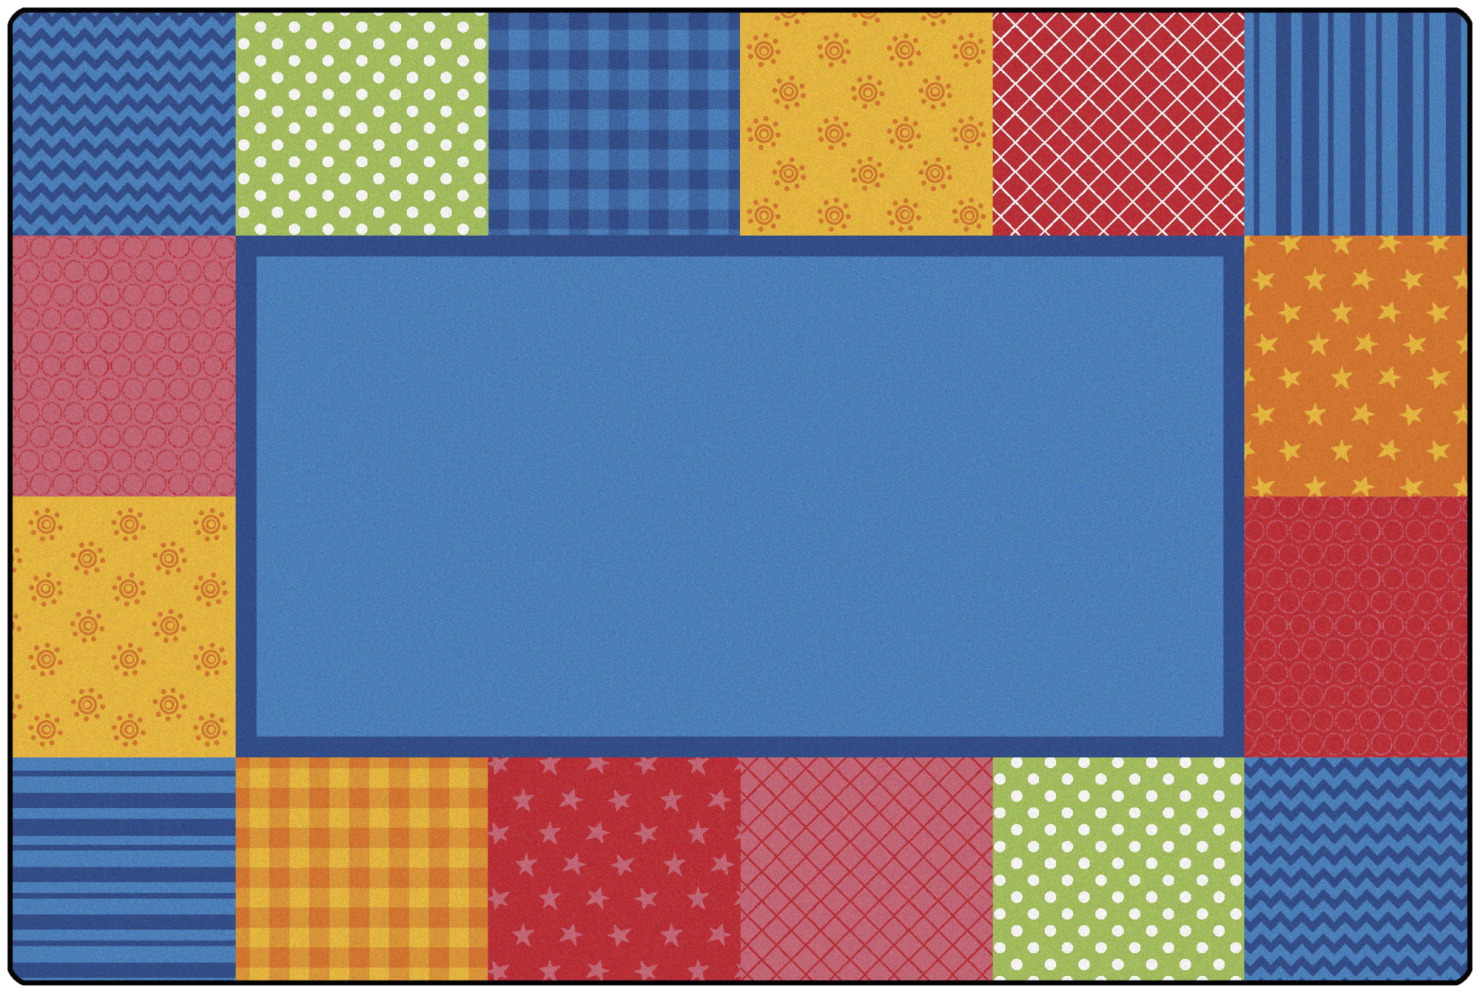 Carpets for Kids KIDSoft Pattern Blocks, 4 x 6 Feet, Rectangle